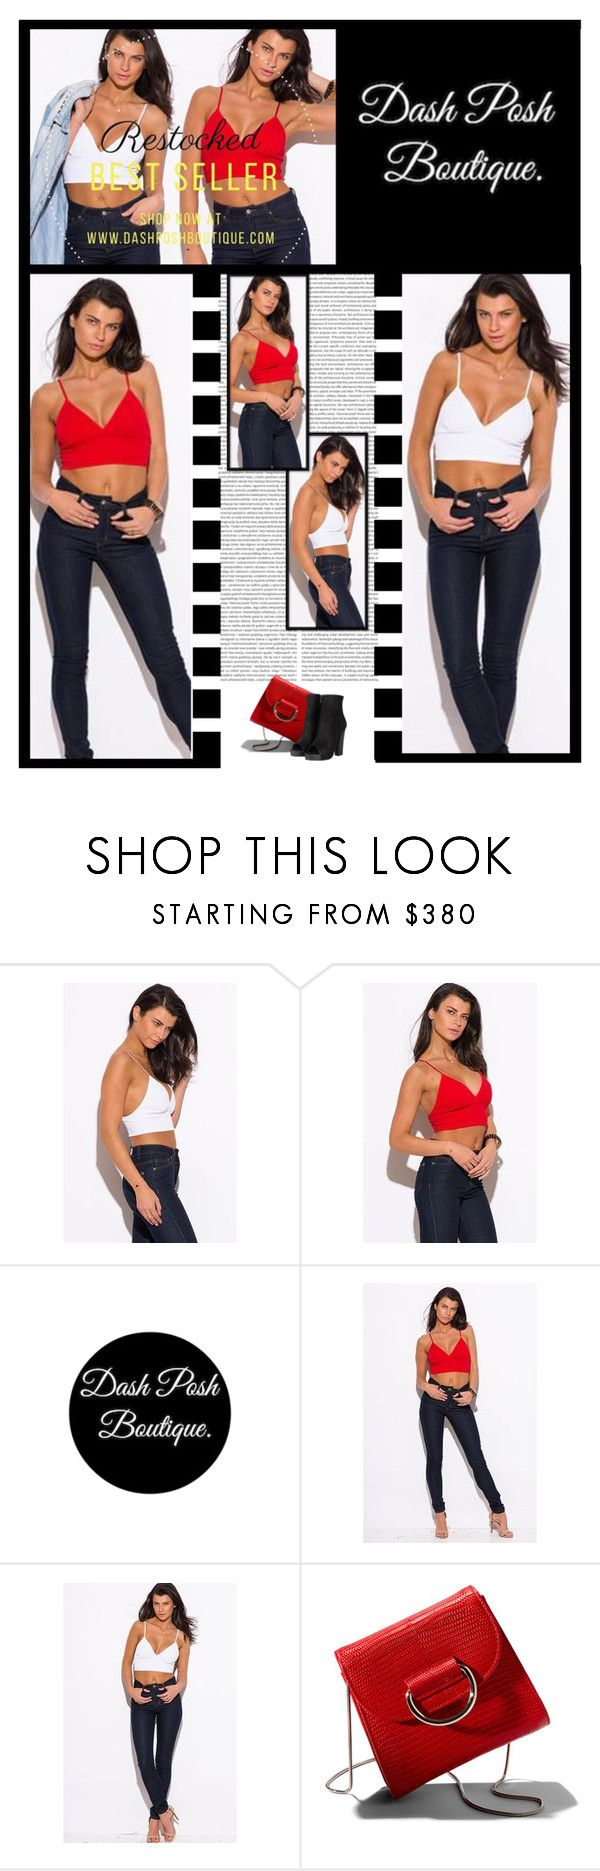 """Dash Posh Boutique (32)"" by irresistible-livingdeadgirl ❤ liked on Polyvore featuring Little Liffner, AllSaints, outfit, red, Sexy, booties and casualoutfit"